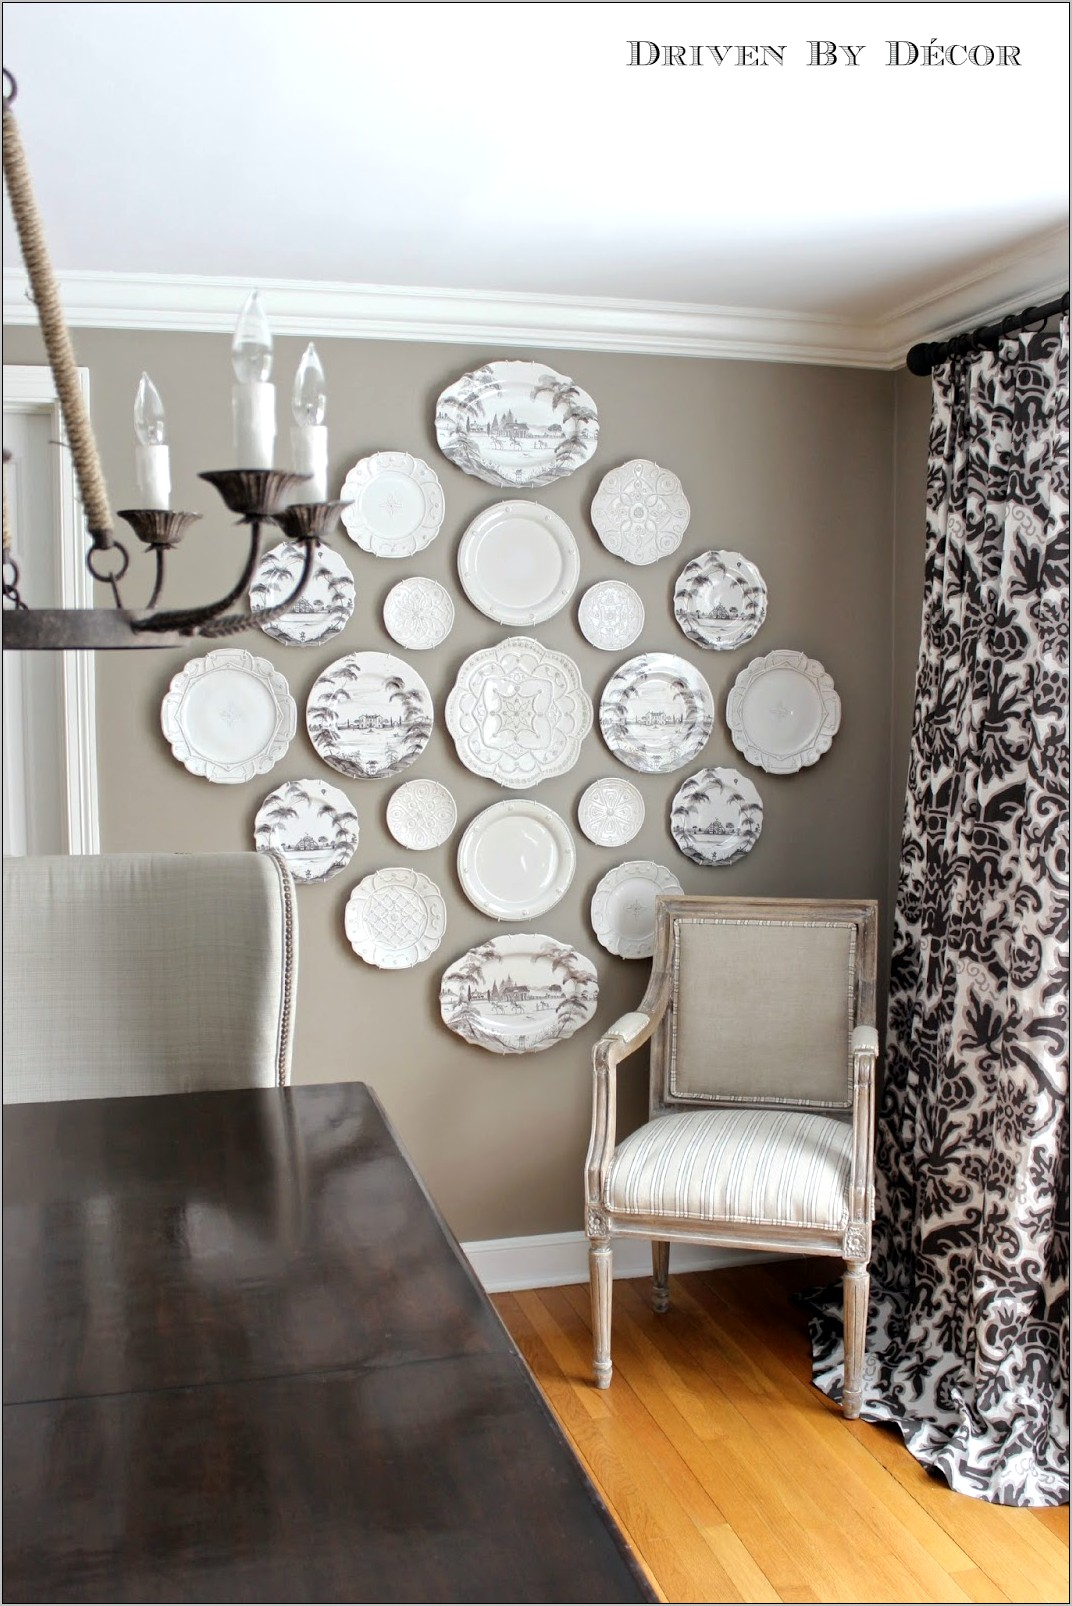 Decorating Dining Room Walls With Plates